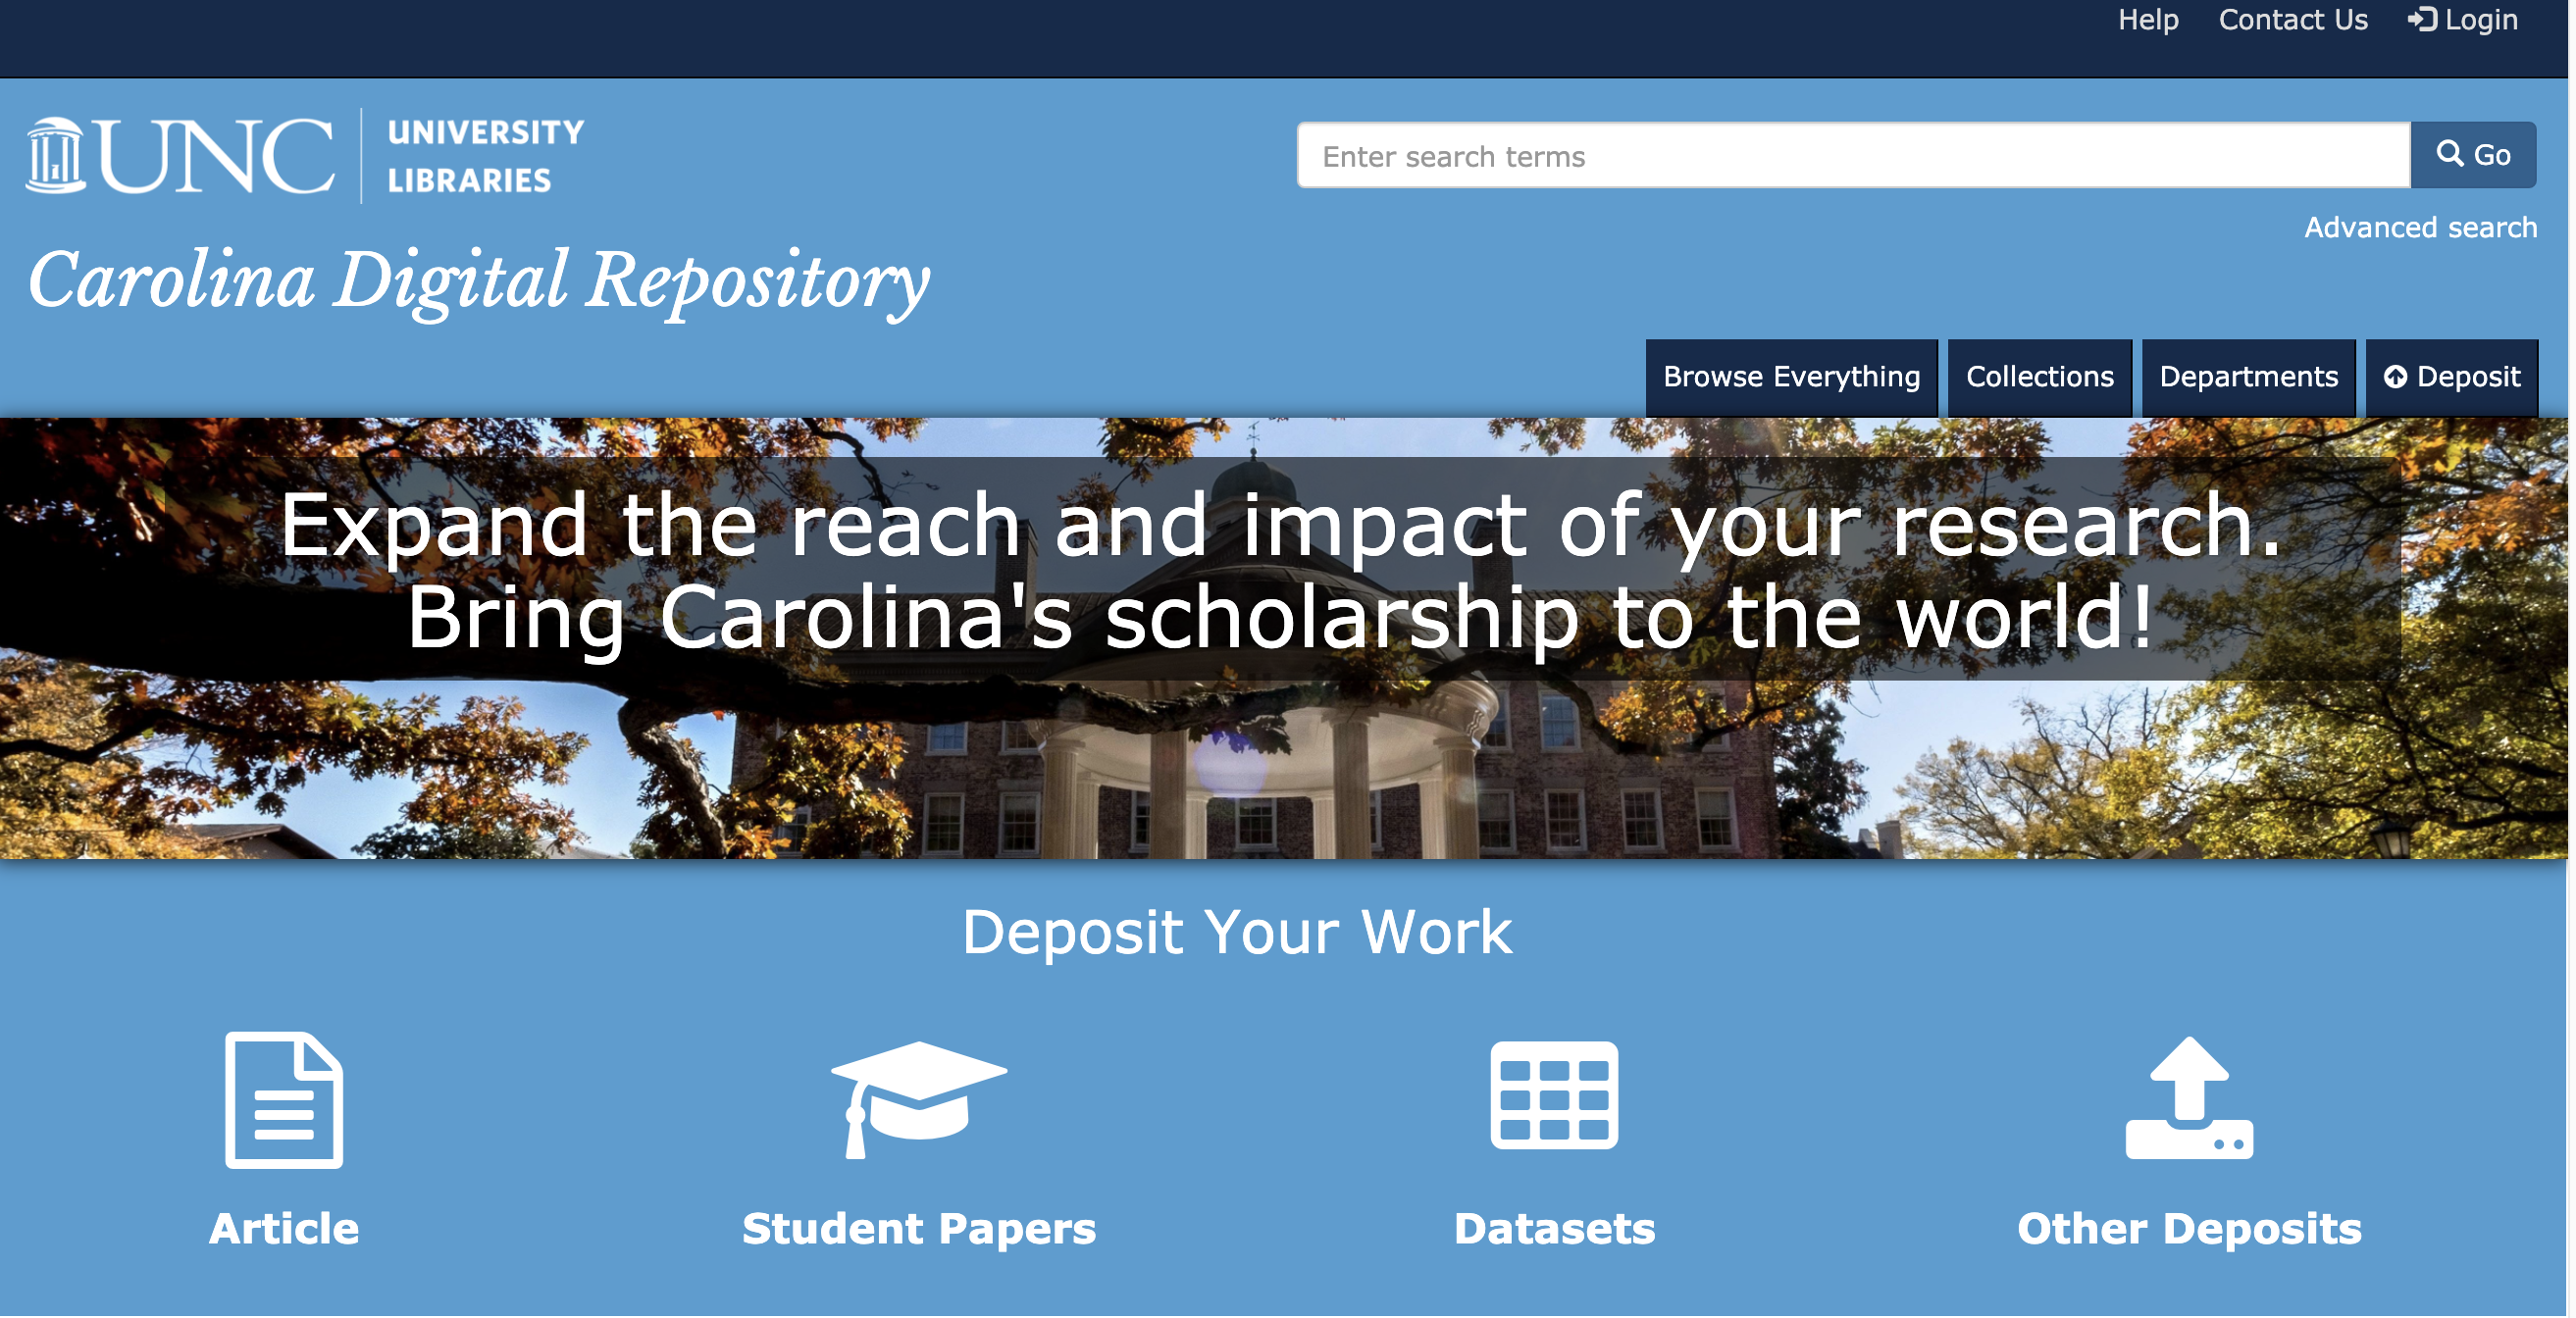 Carolina Digital Repository website